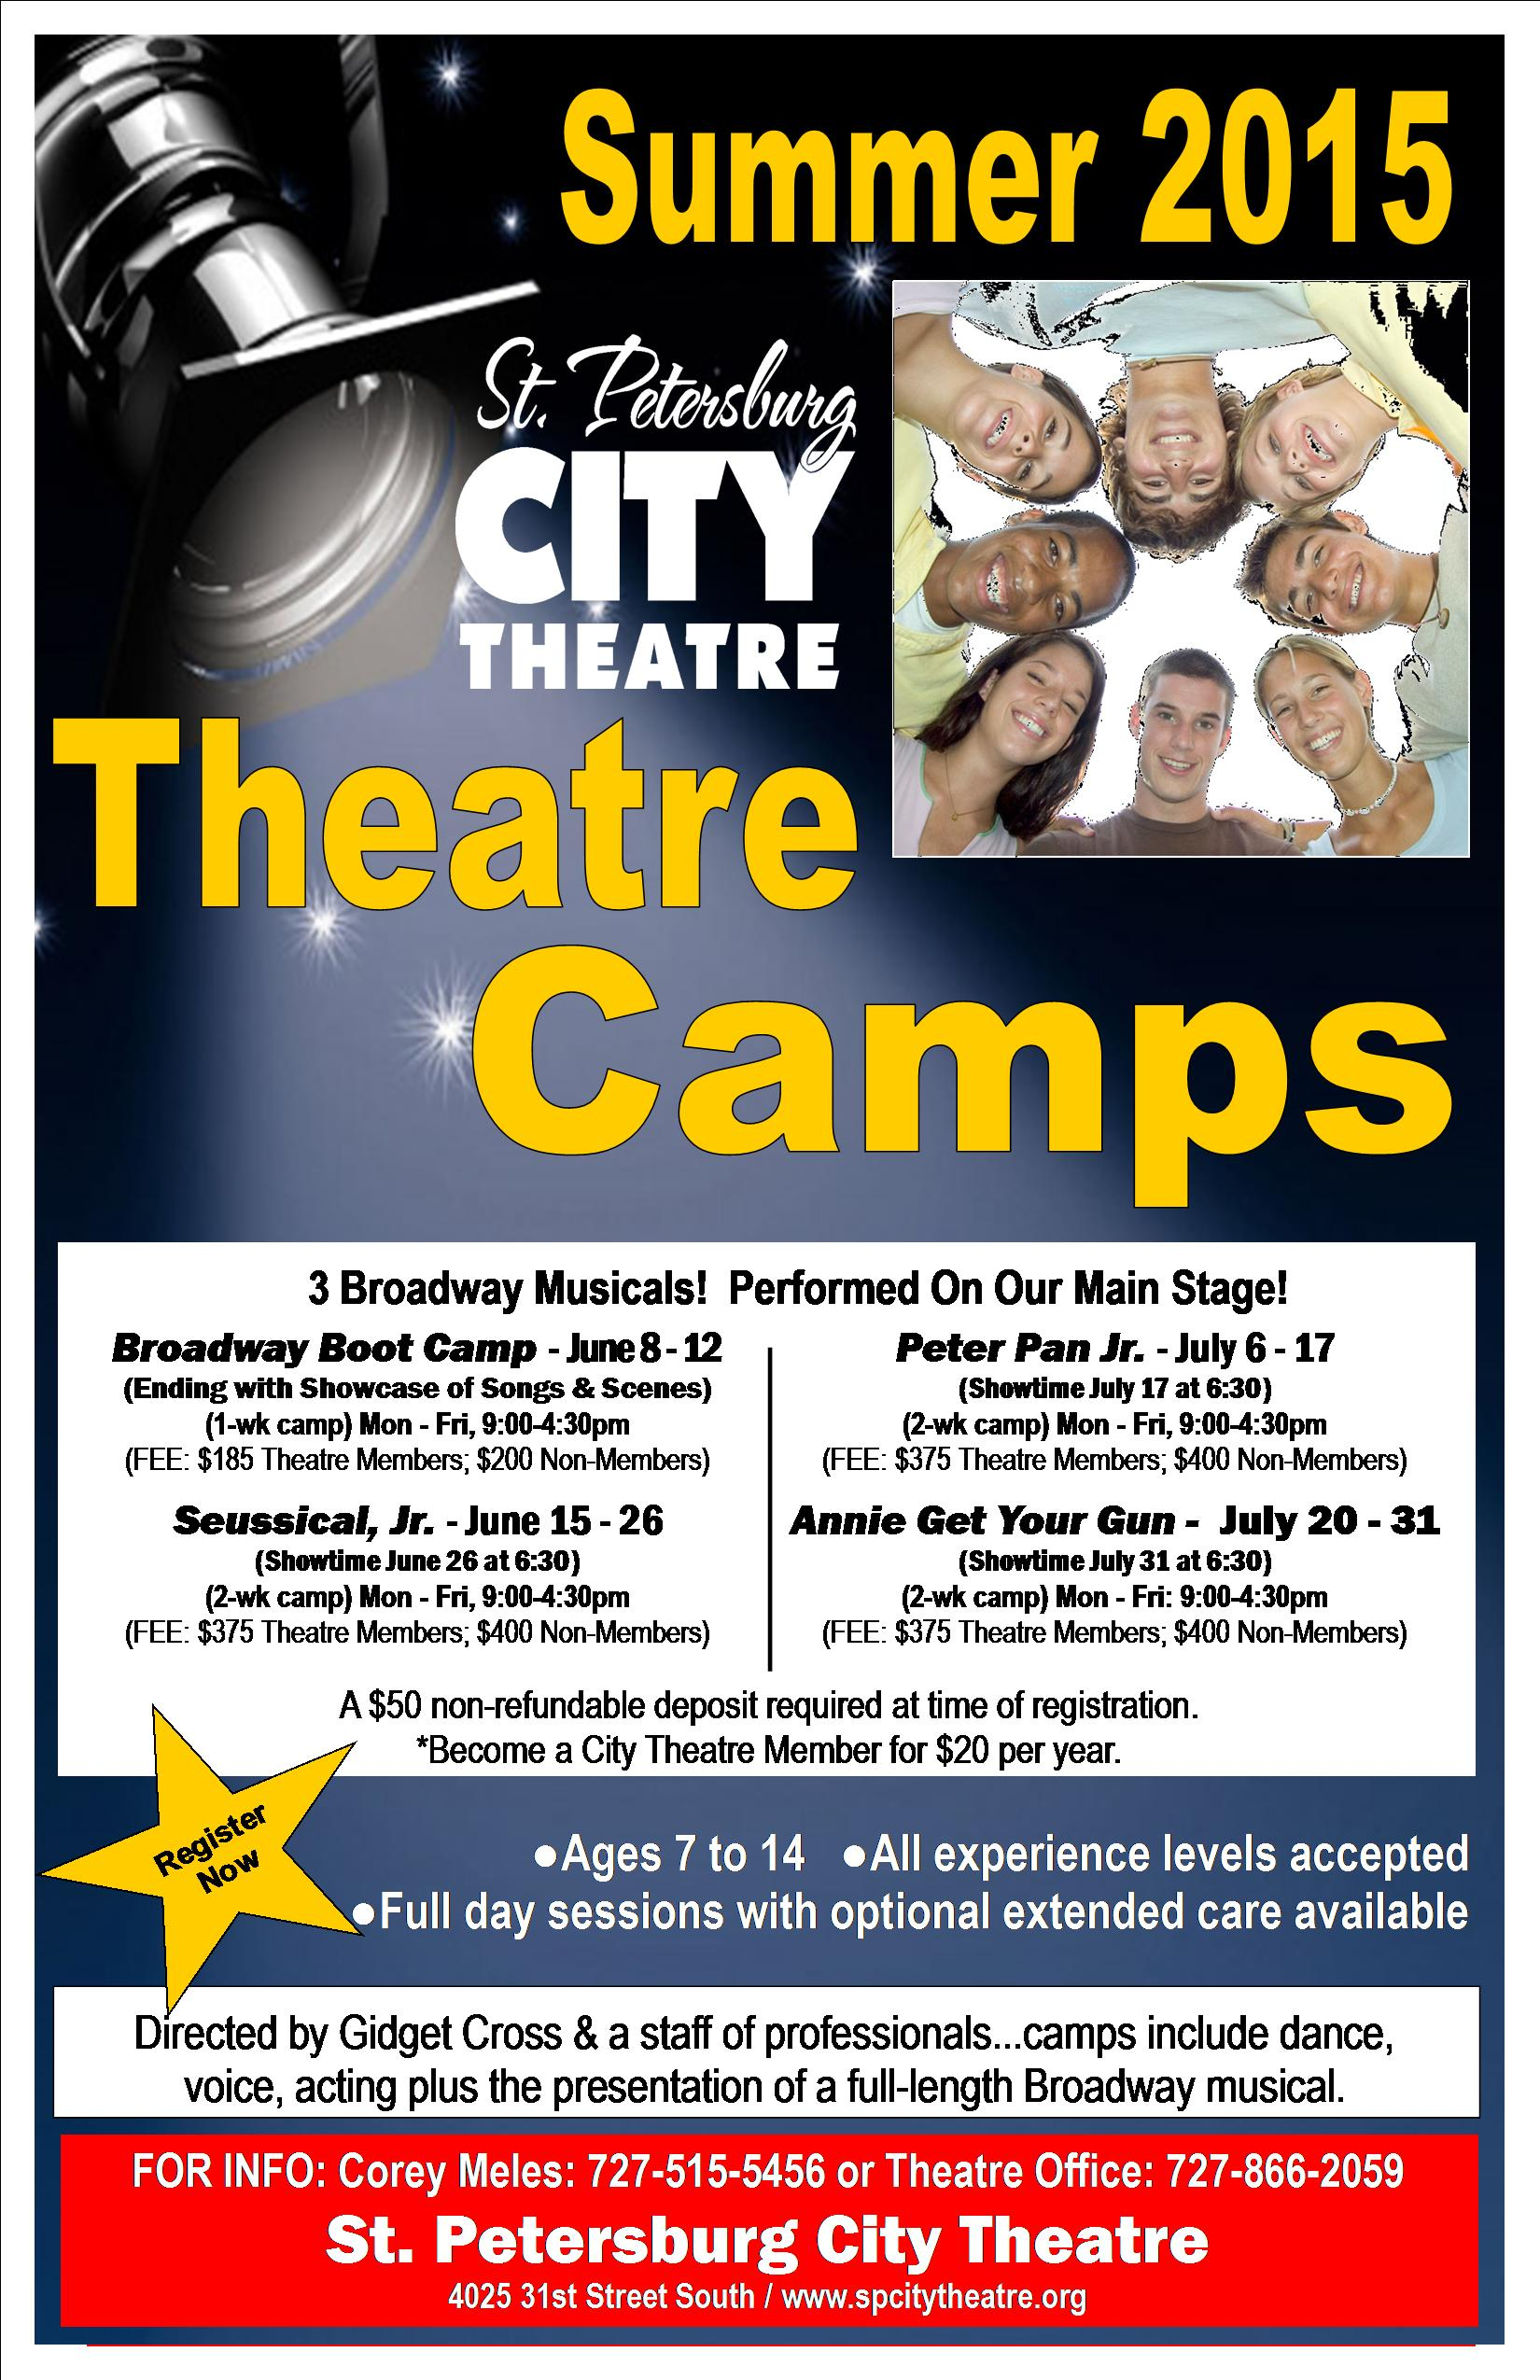 Summer camp flyer 1117 2015 st petersburg city theatre camp flyer 1117 2015 publicscrutiny Image collections